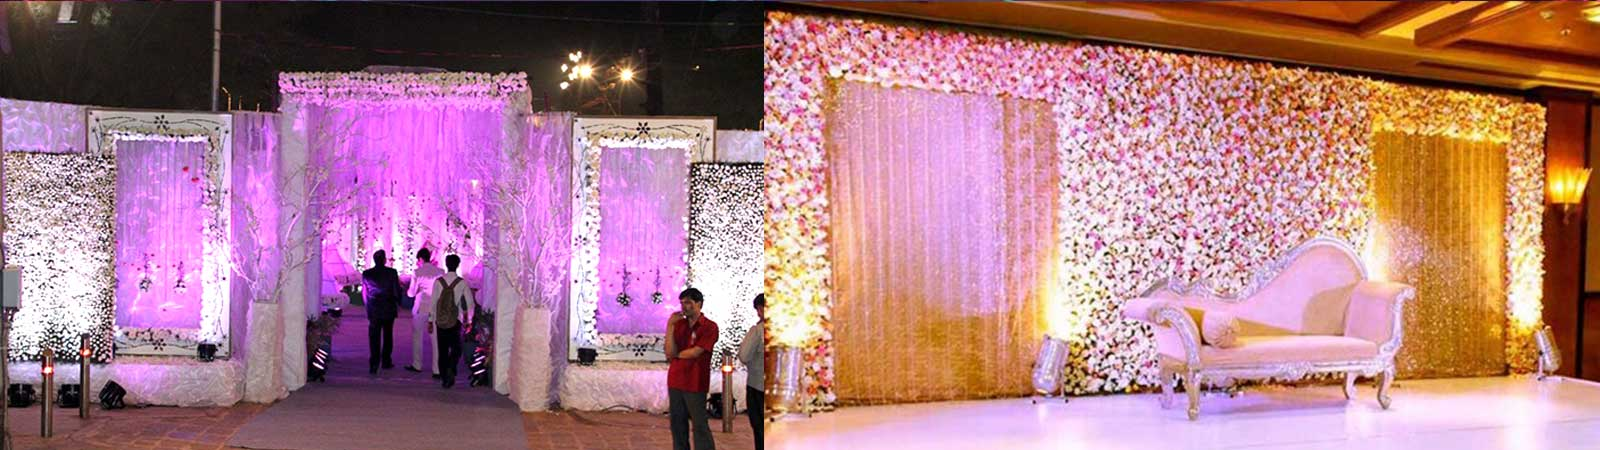 Best Wedding Decorators In Delhi Noida Gurgaon India Wedding